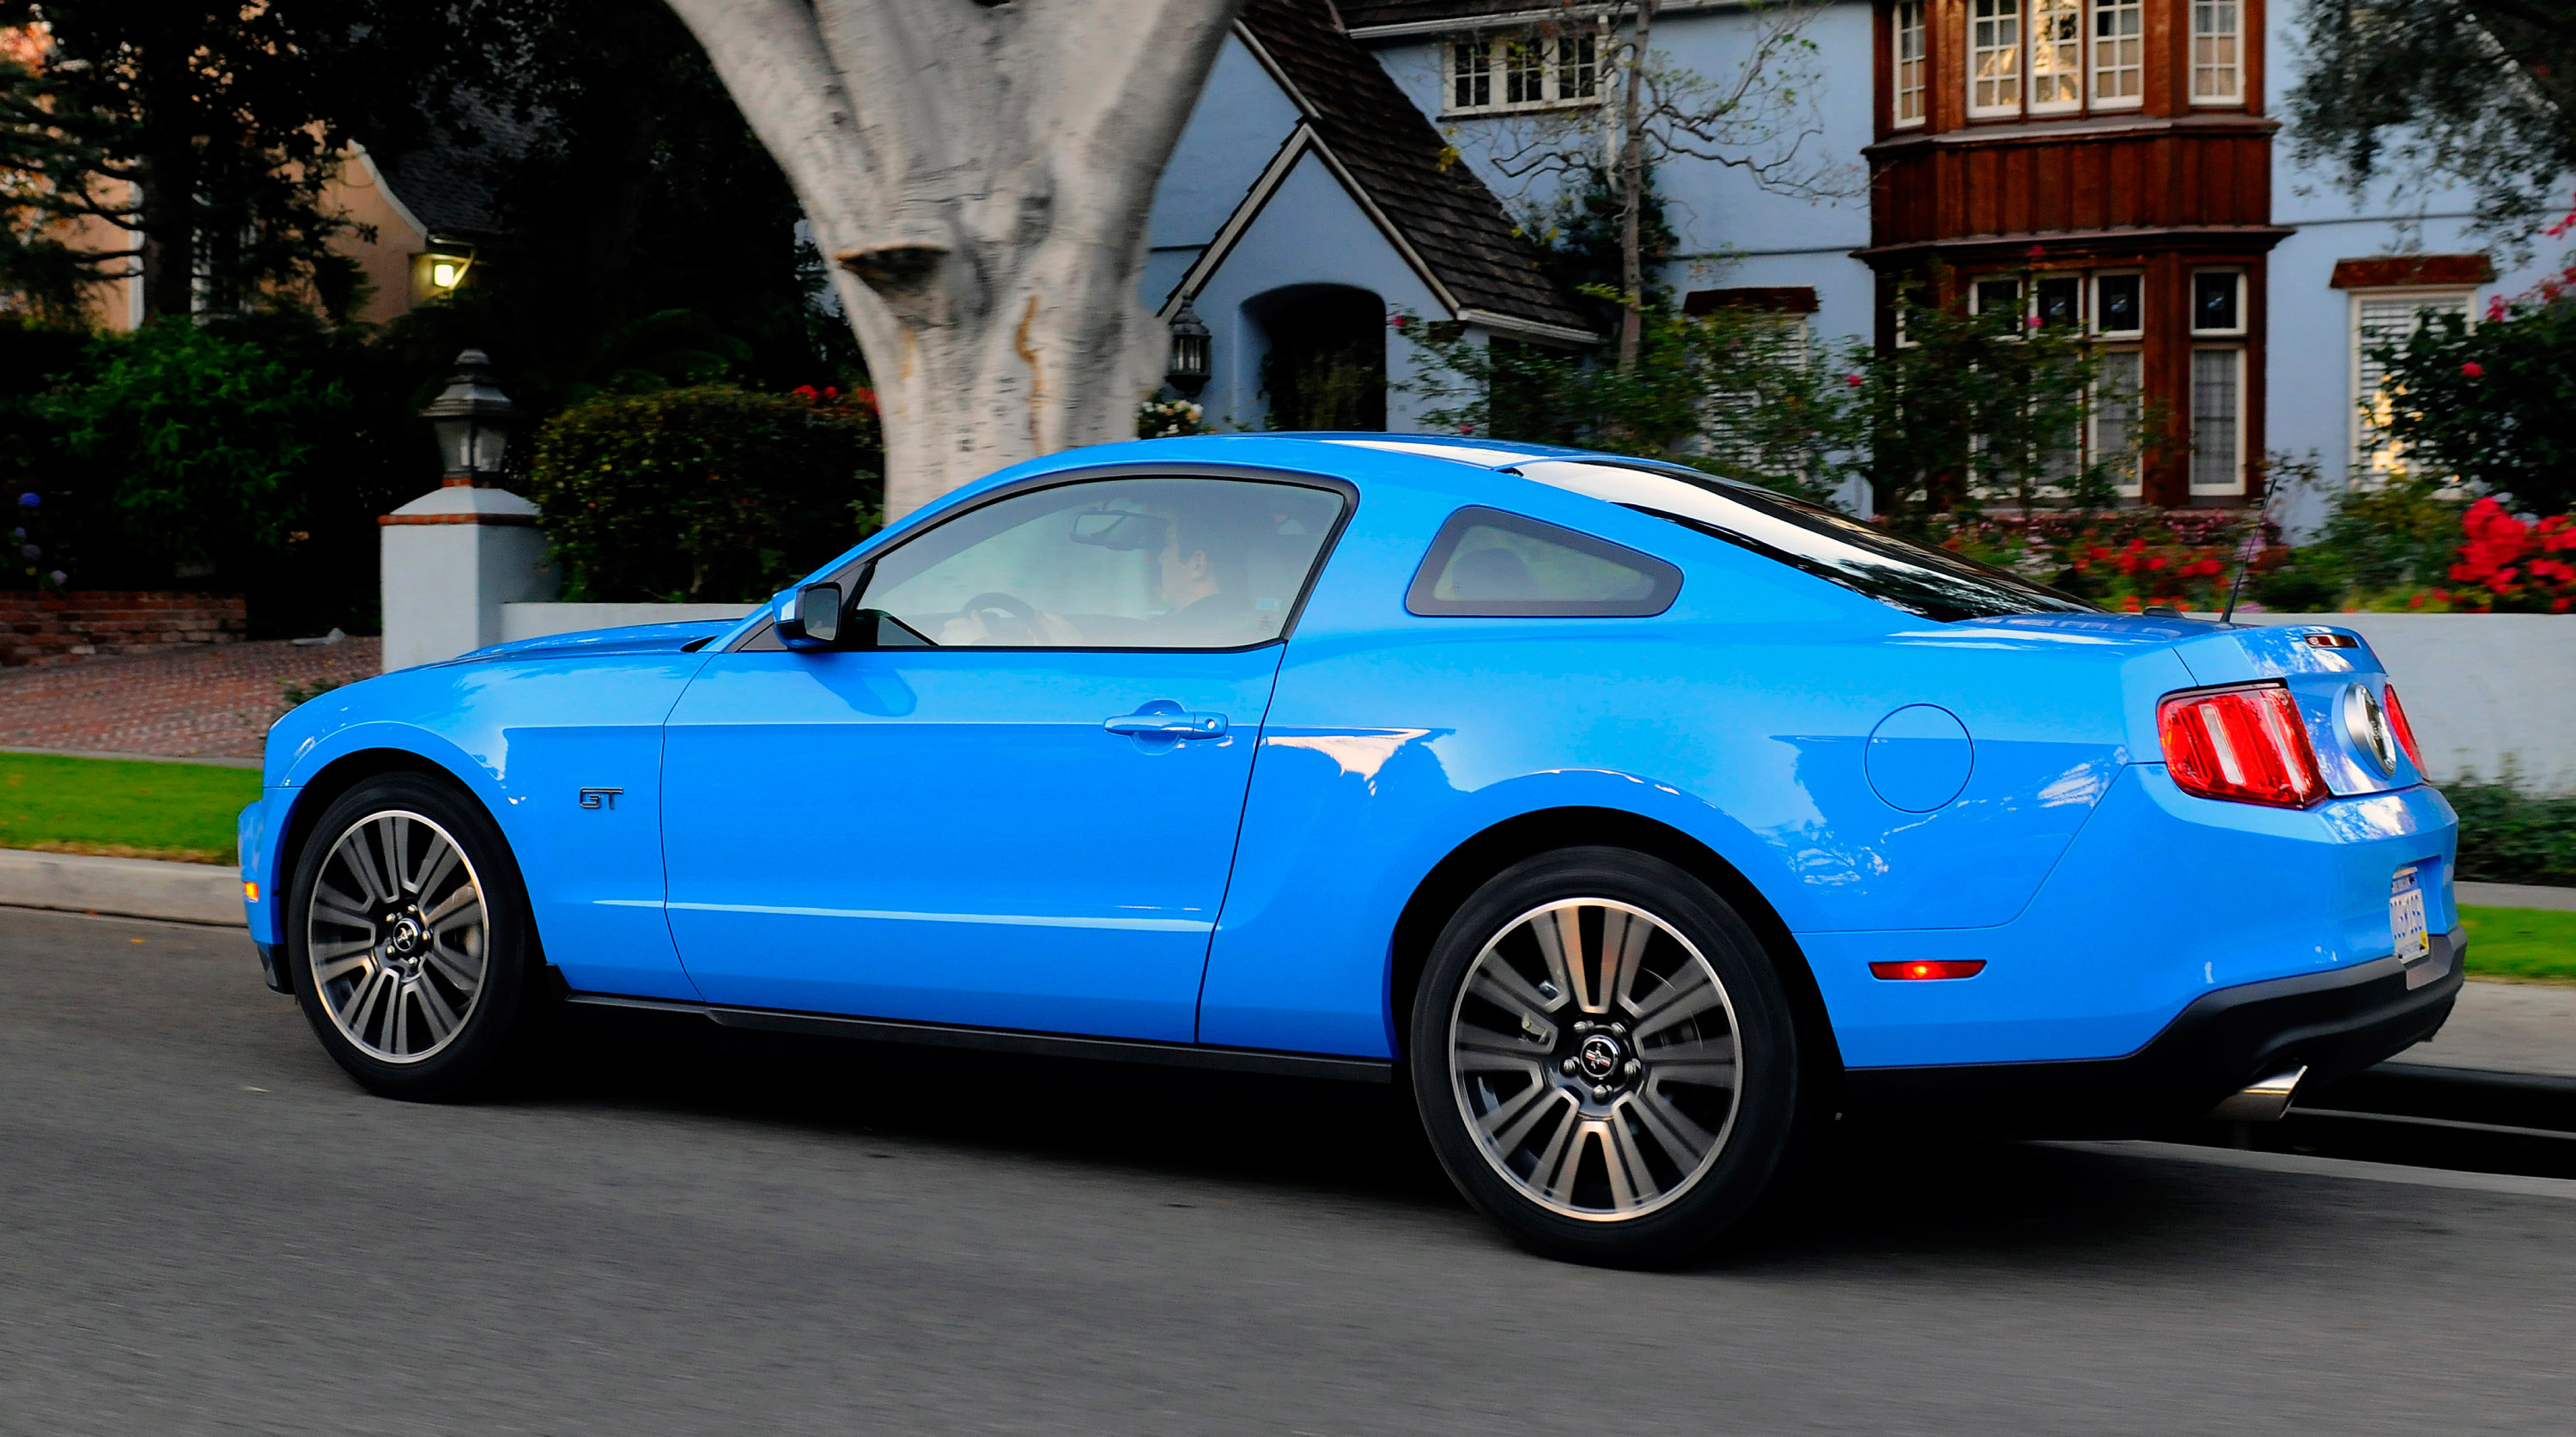 2010 Ford Mustang GT Picture